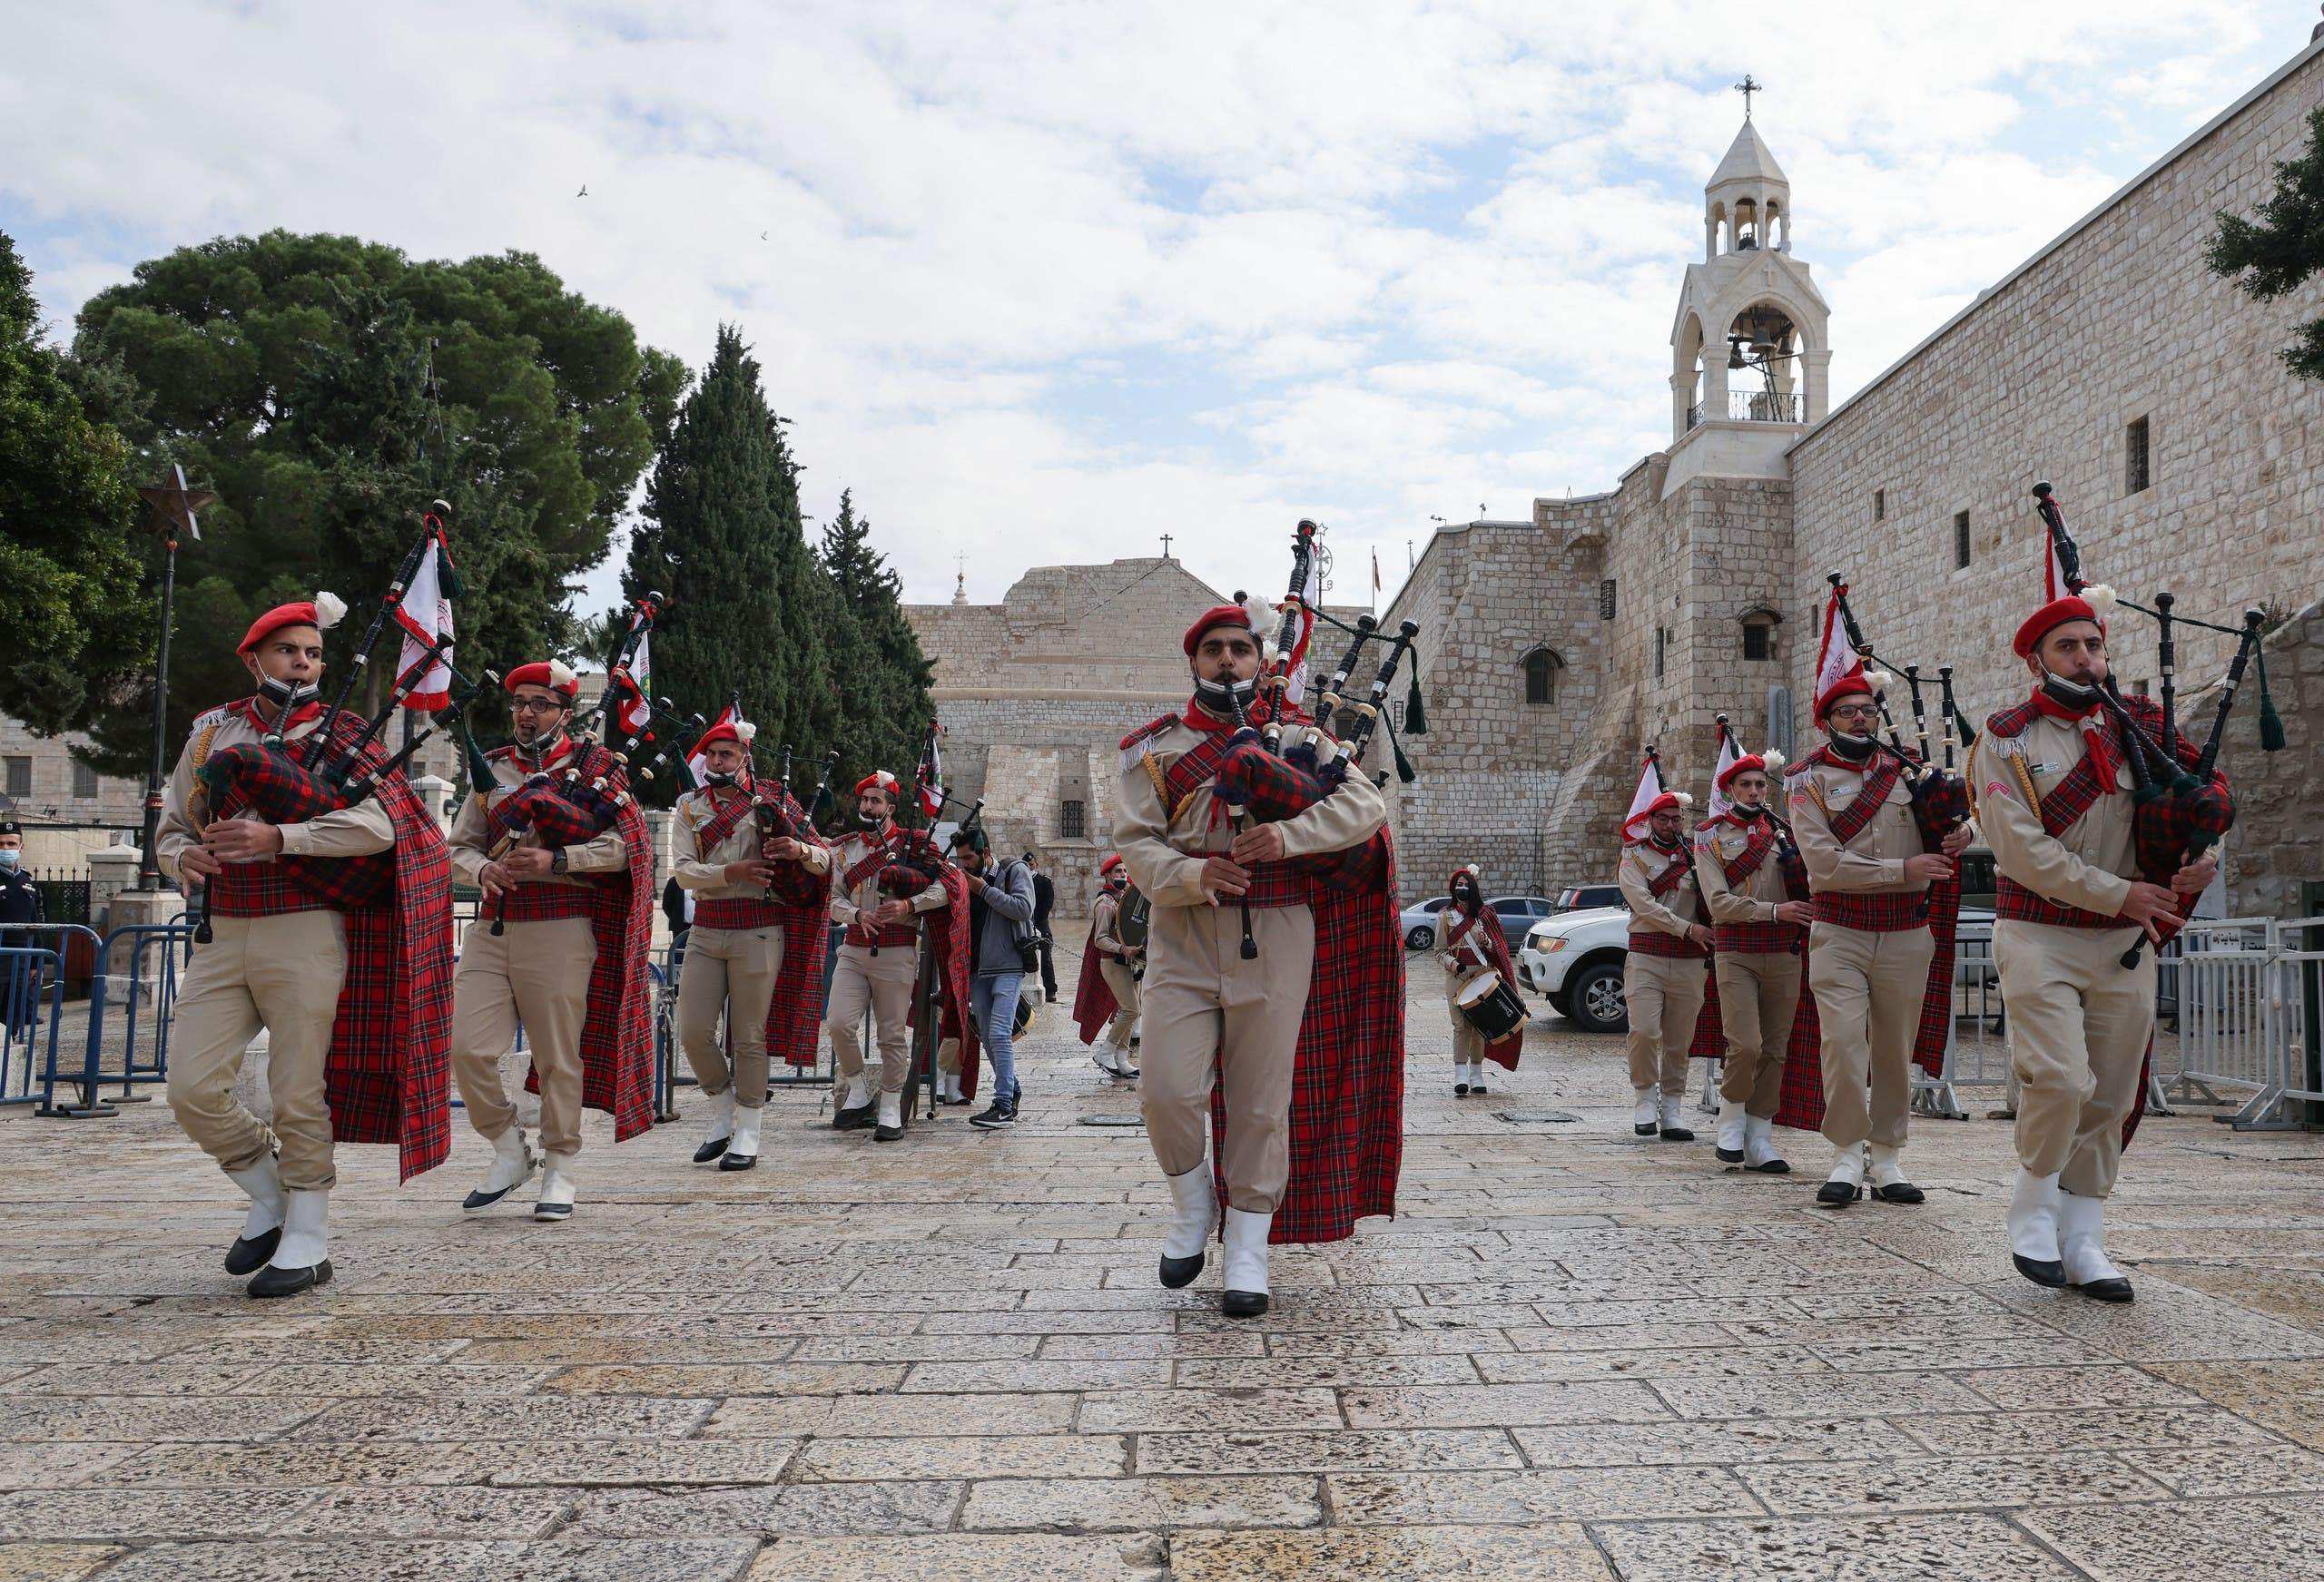 A procession to celebrate a mass at the Church of the Nativity compound in Bethlehem on November 28, 2020. (AFP)